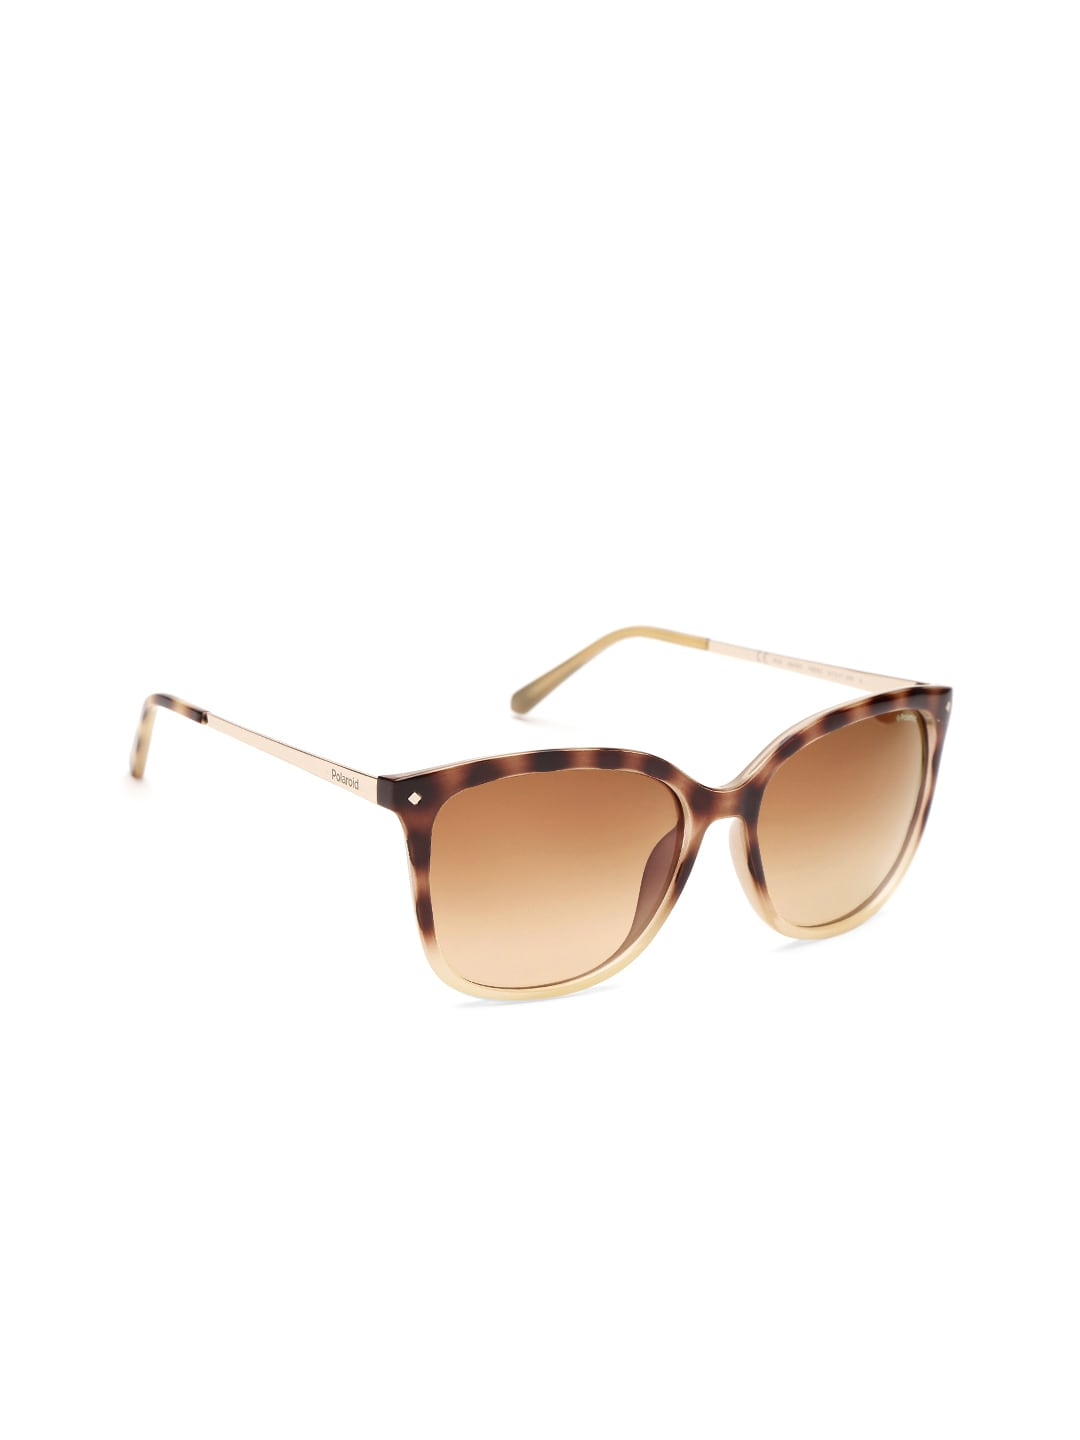 ae53935699 Sunglasses - Buy Shades for Men and Women Online in India